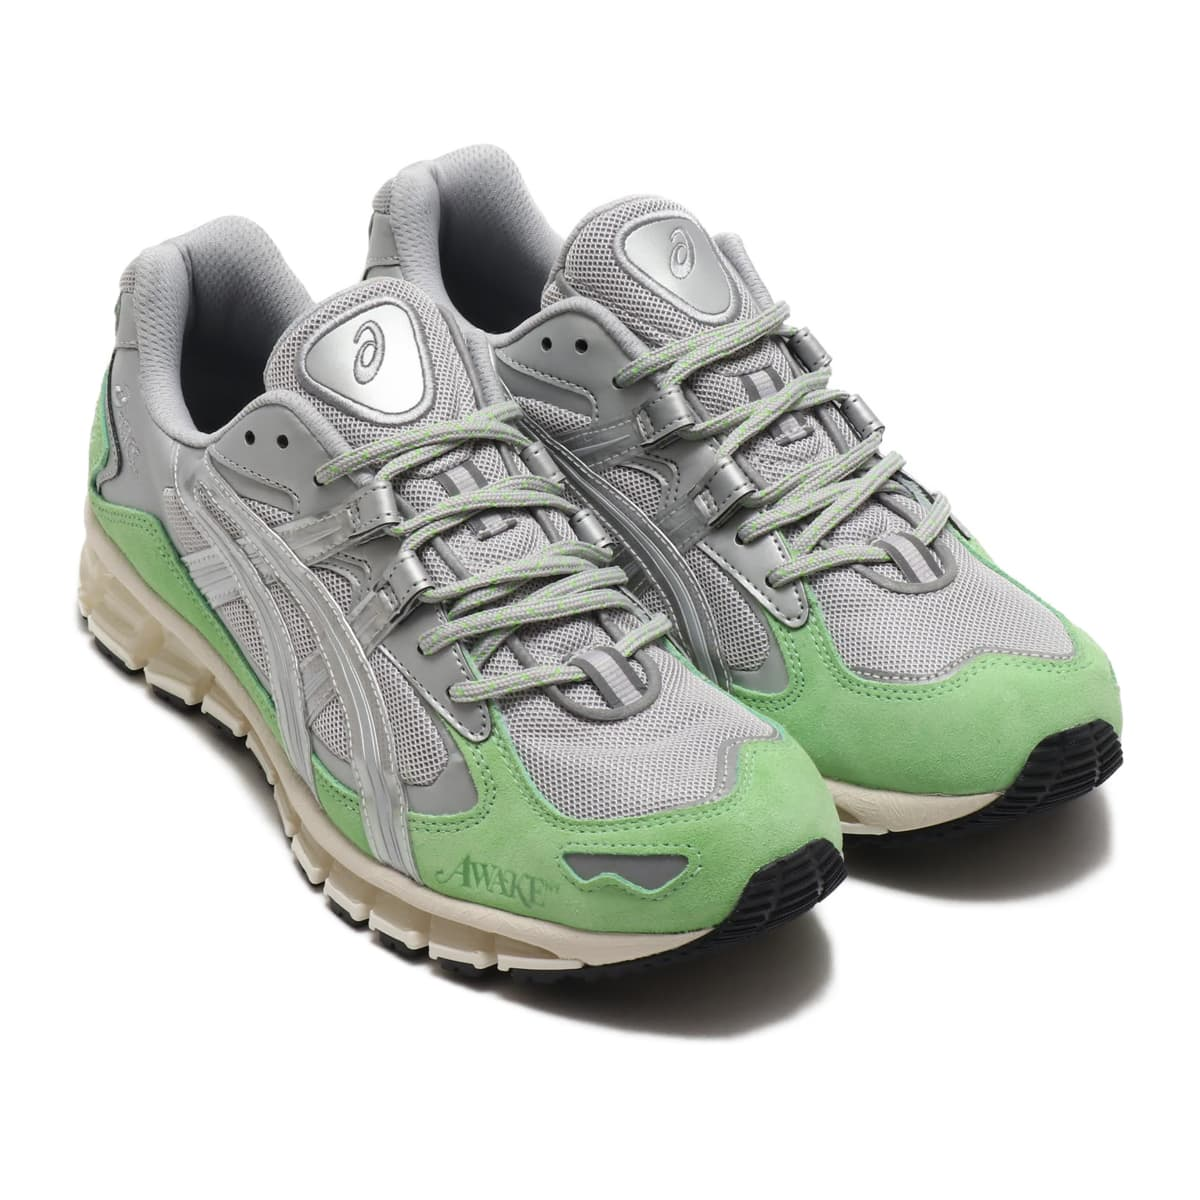 asics Tiger GEL-KAYANO 5 360 AWAKE NY SILVER 19AW-S_photo_large